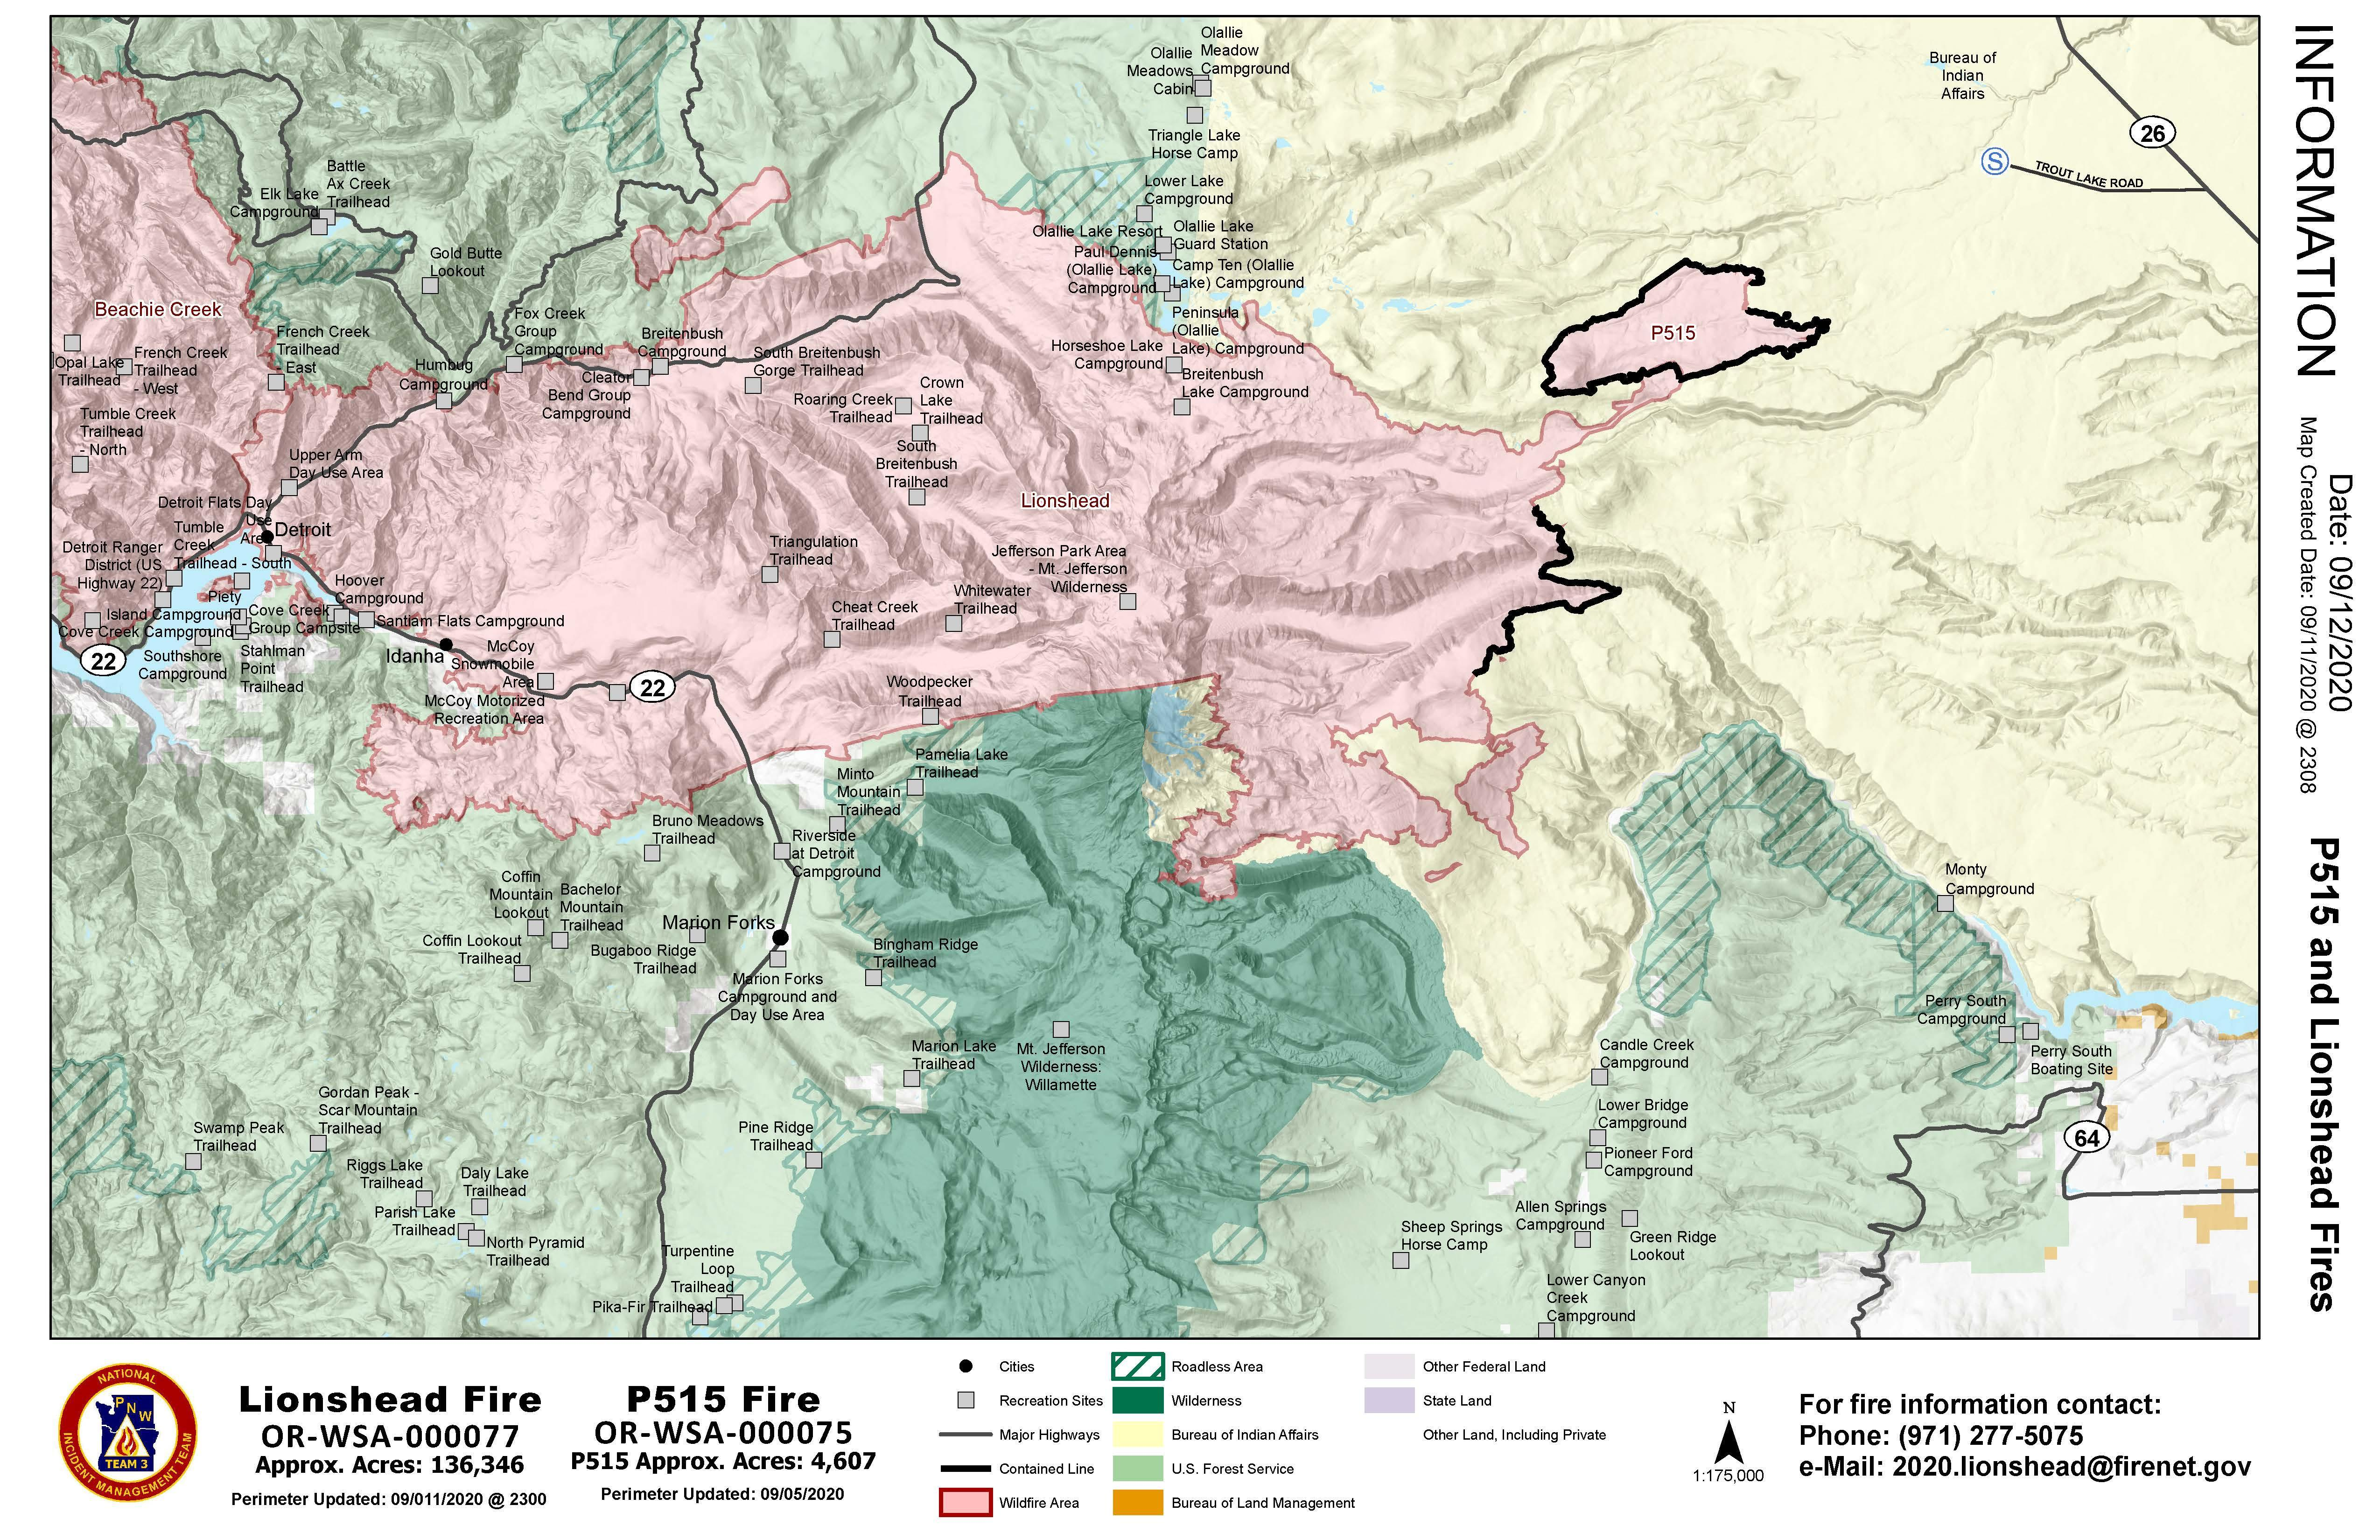 Map of Lionshead fire perimeter as it relates to nearby communities